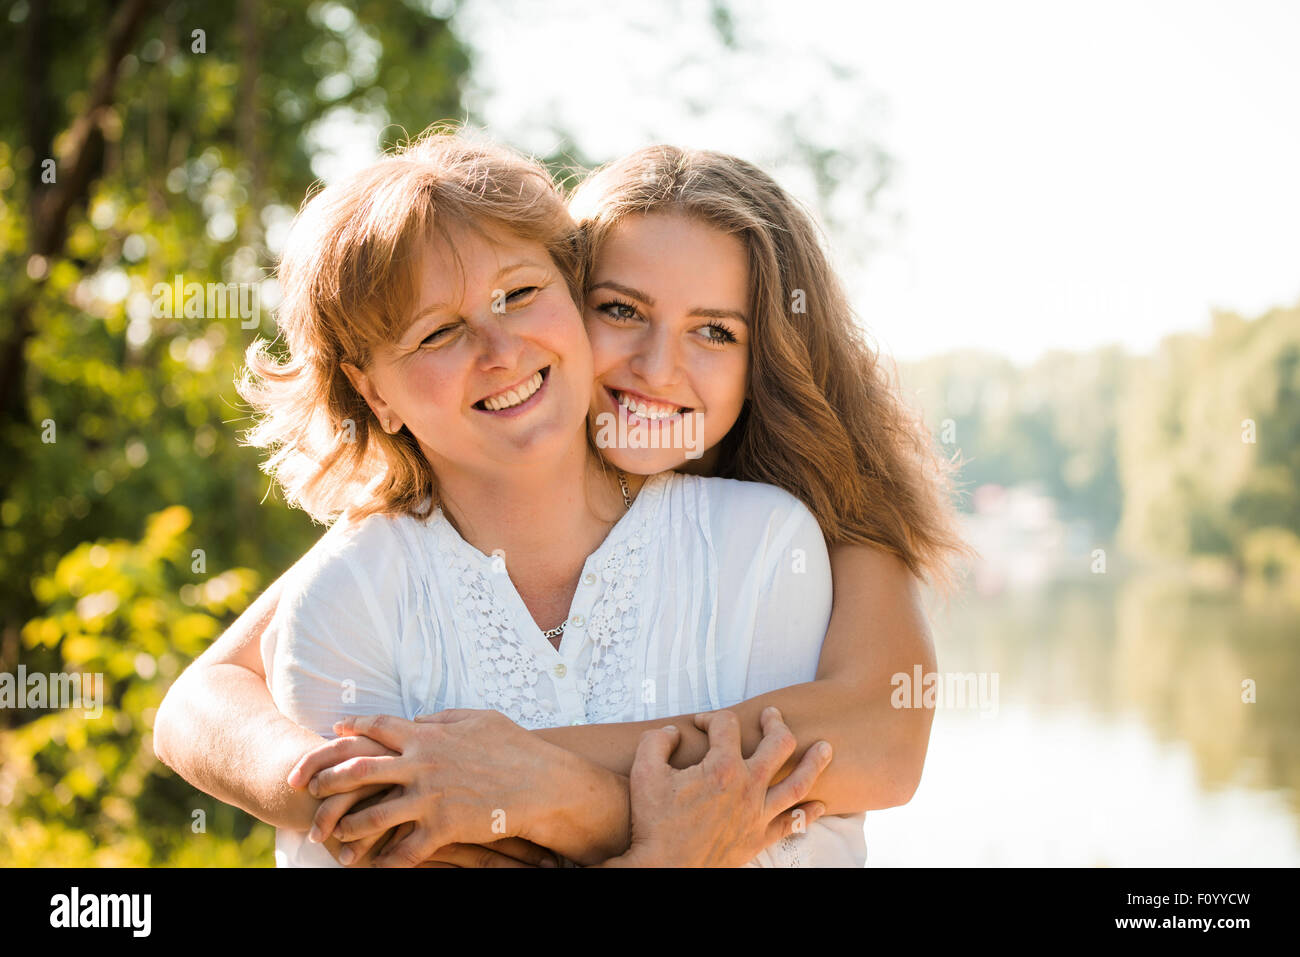 Mature mother hugging avec sa fille adolescente dans la nature en plein air aux beaux jours Photo Stock